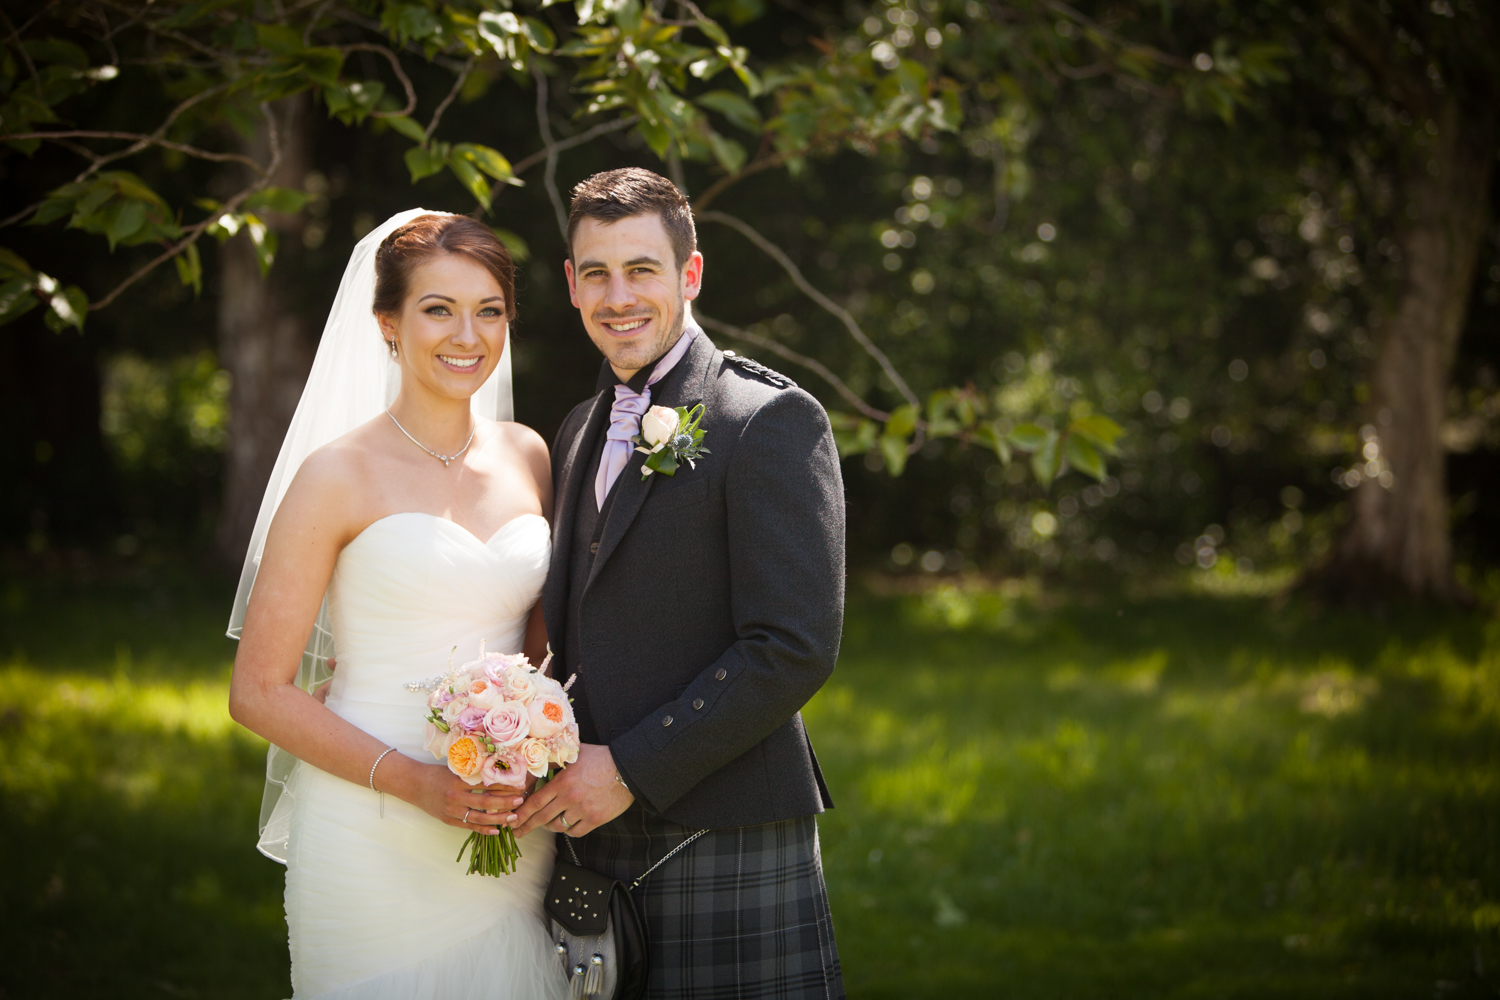 PICTORIAL_wedding_dryburgh_abbey_hotel_photographer_-139.jpg